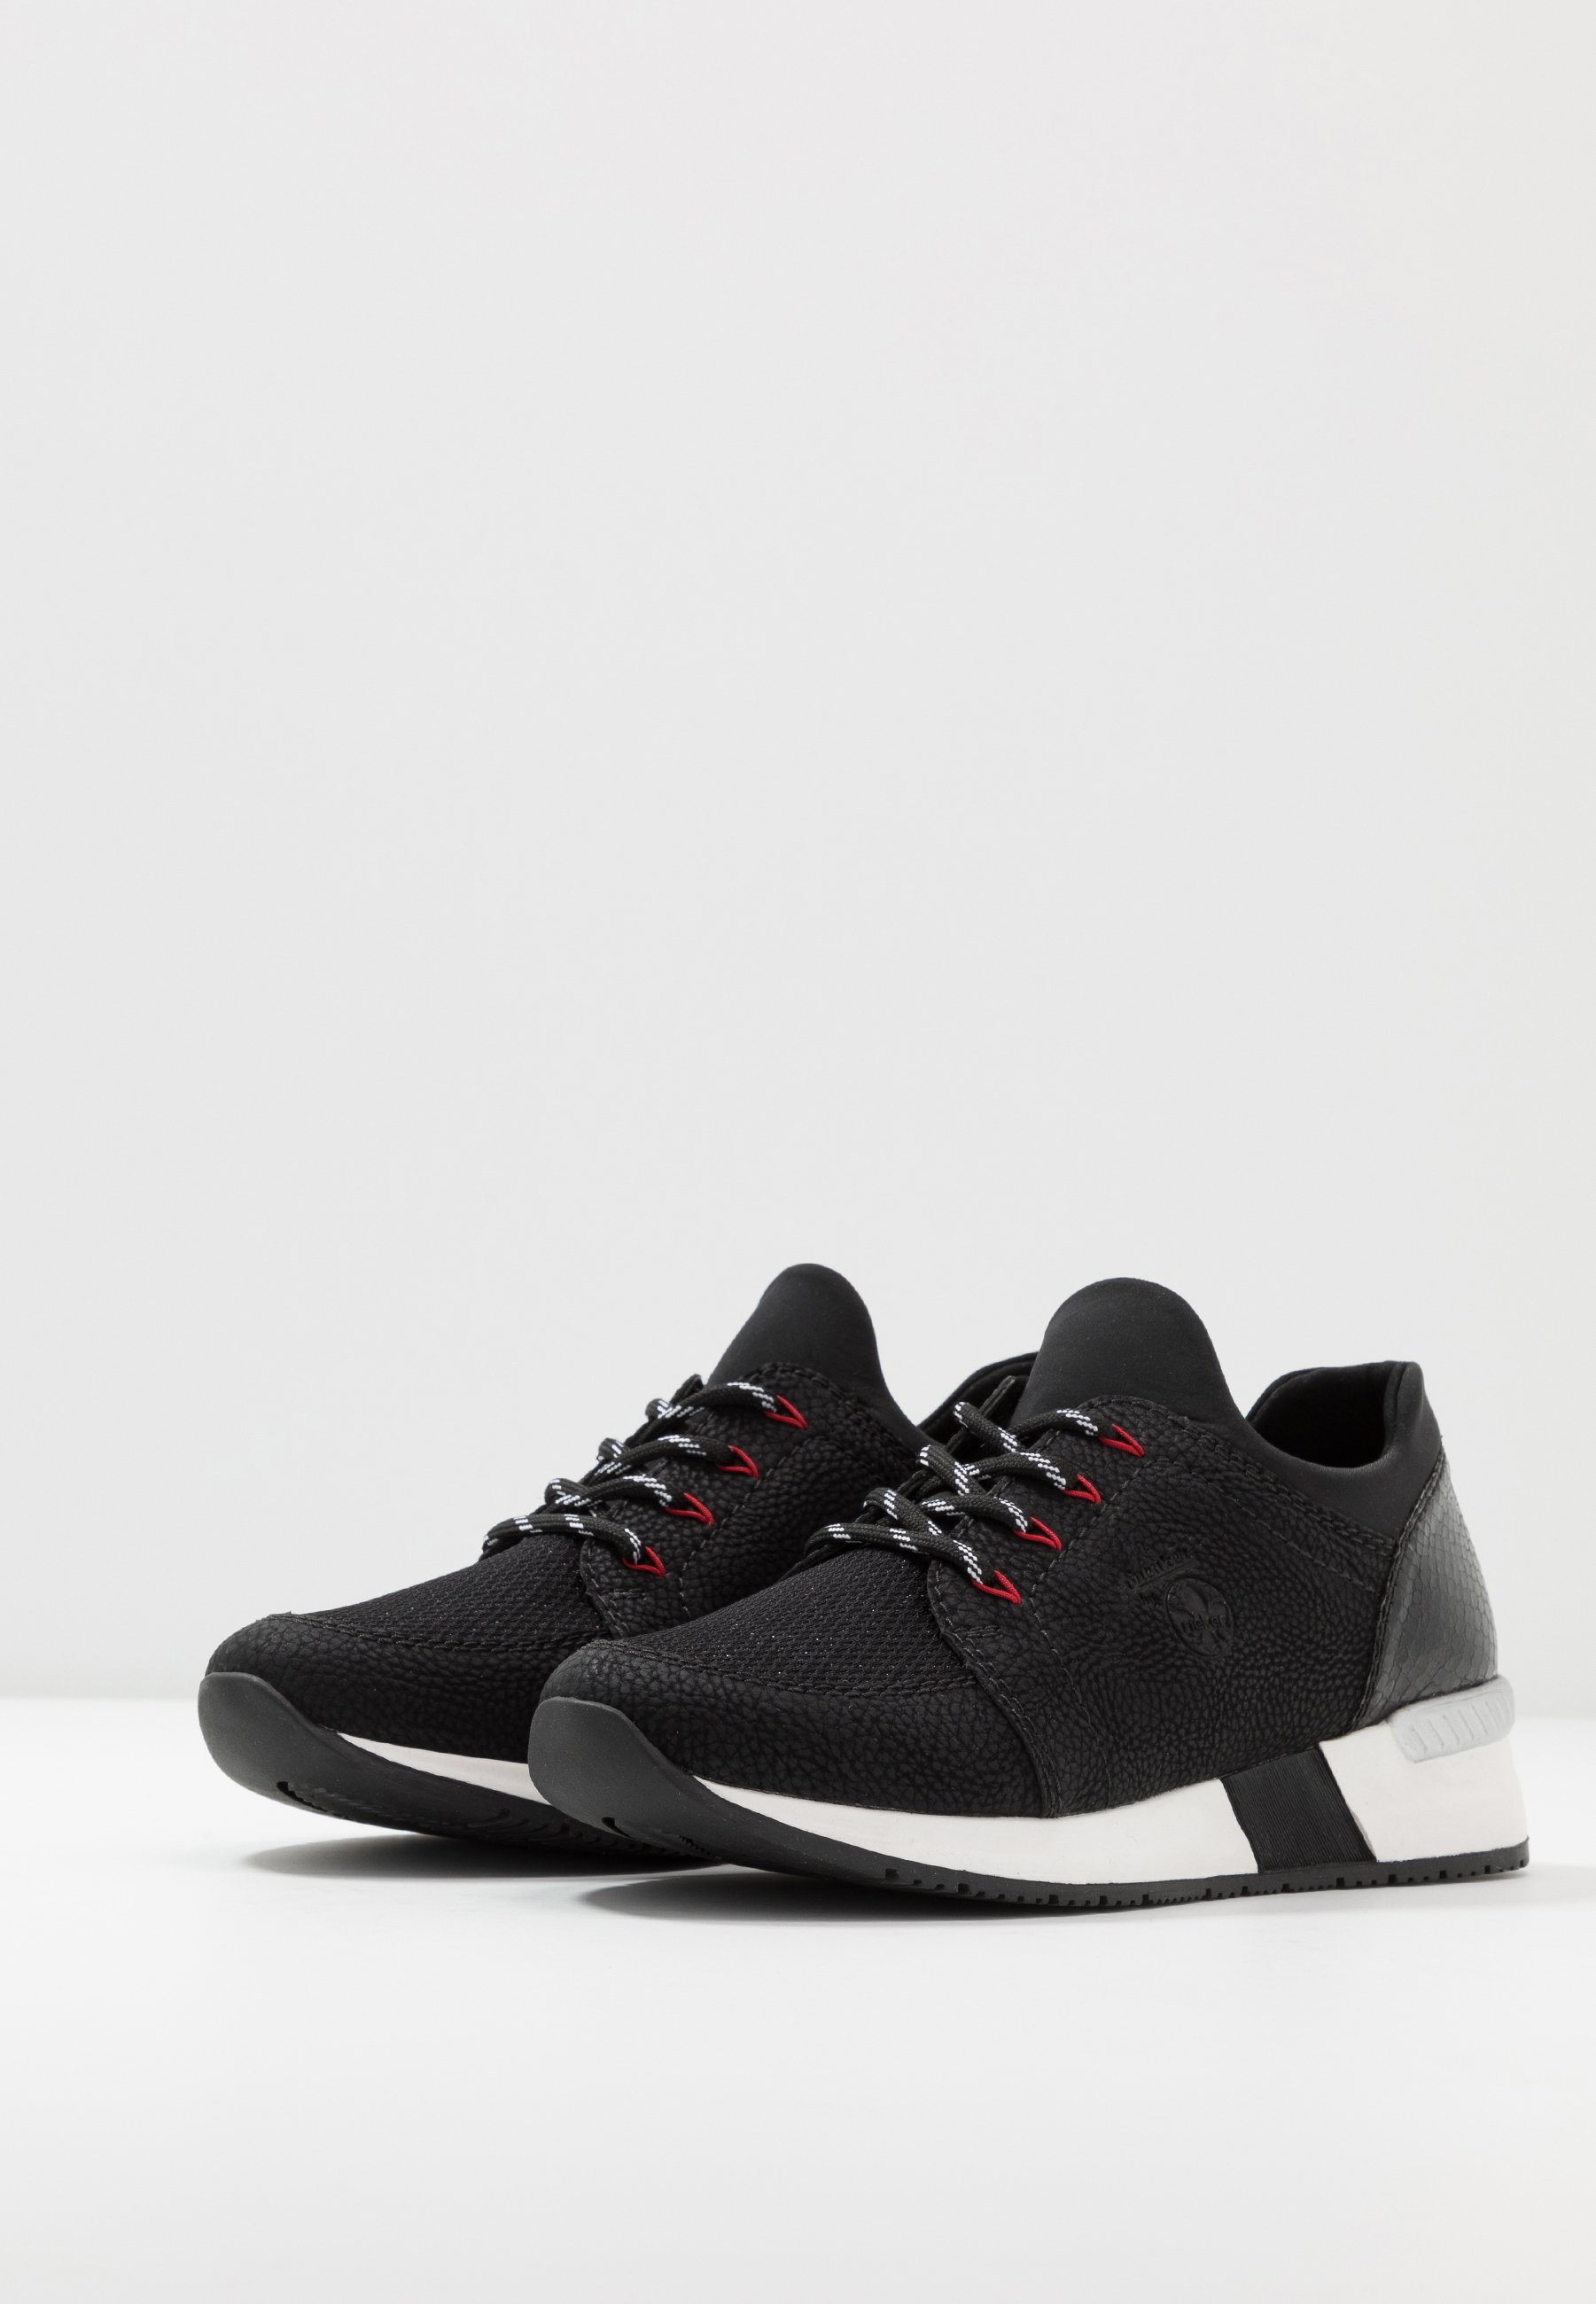 Collections Very Cheap Women's Shoes Rieker Trainers schwarz VFaGpZcVB CwSt3iAN3